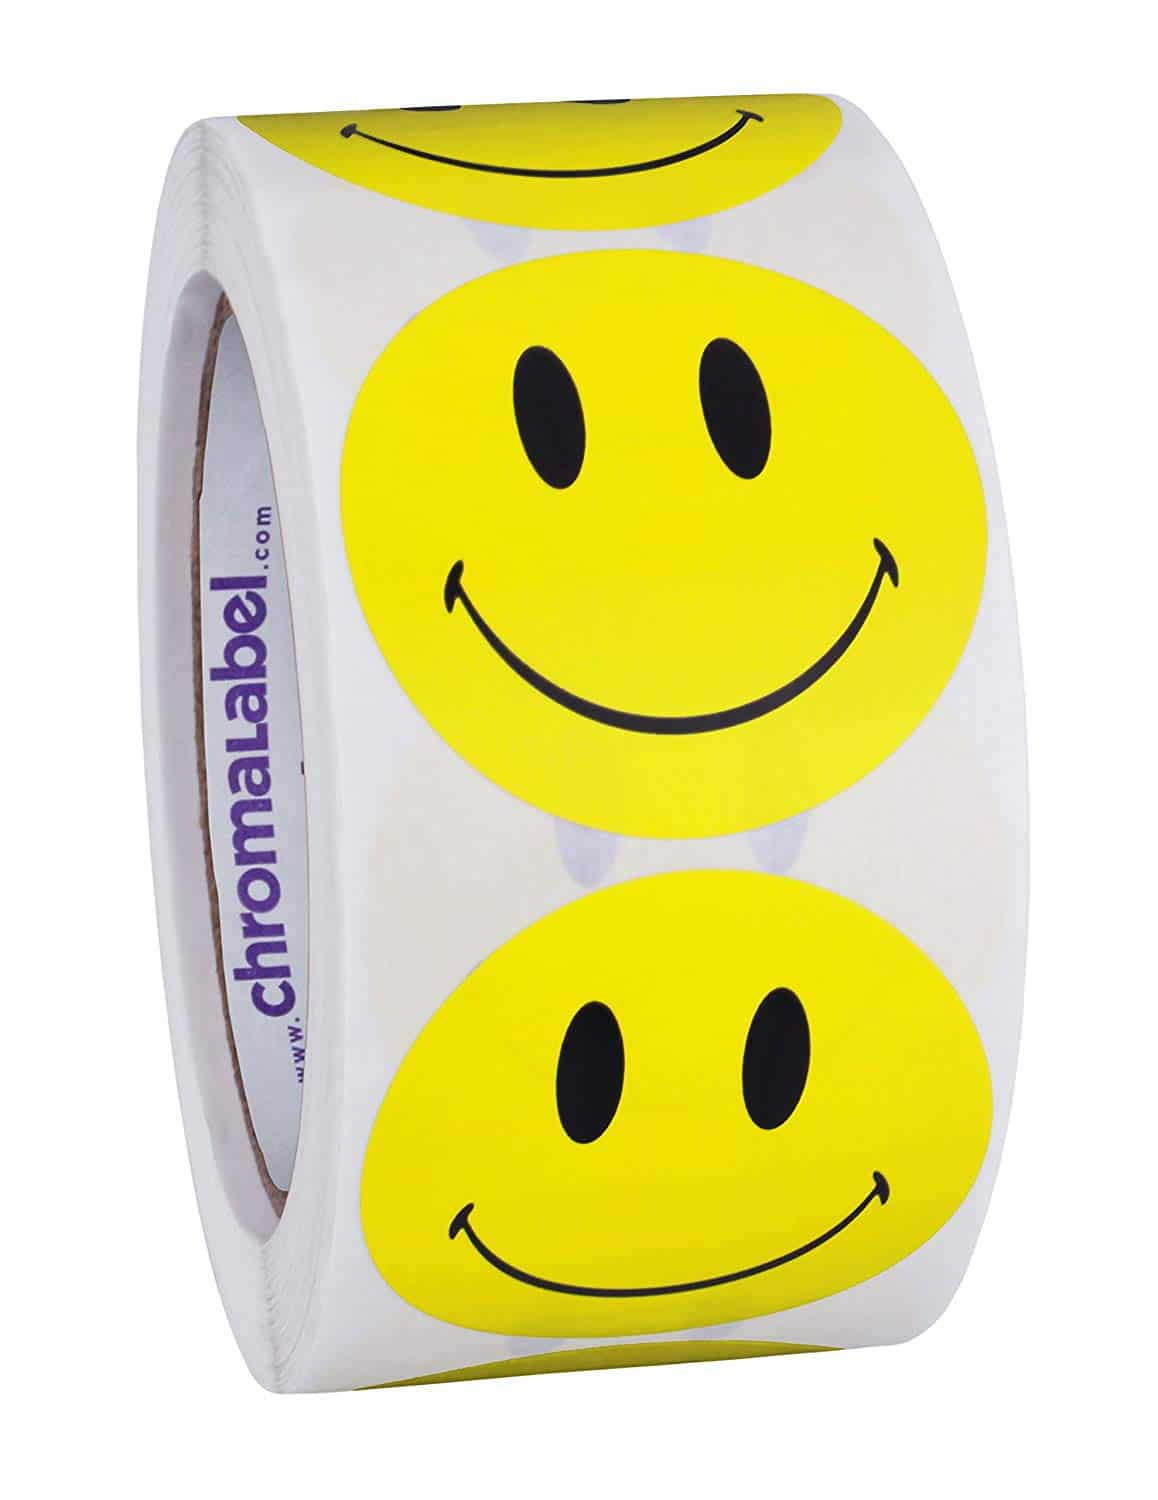 Smiley face sticker roll